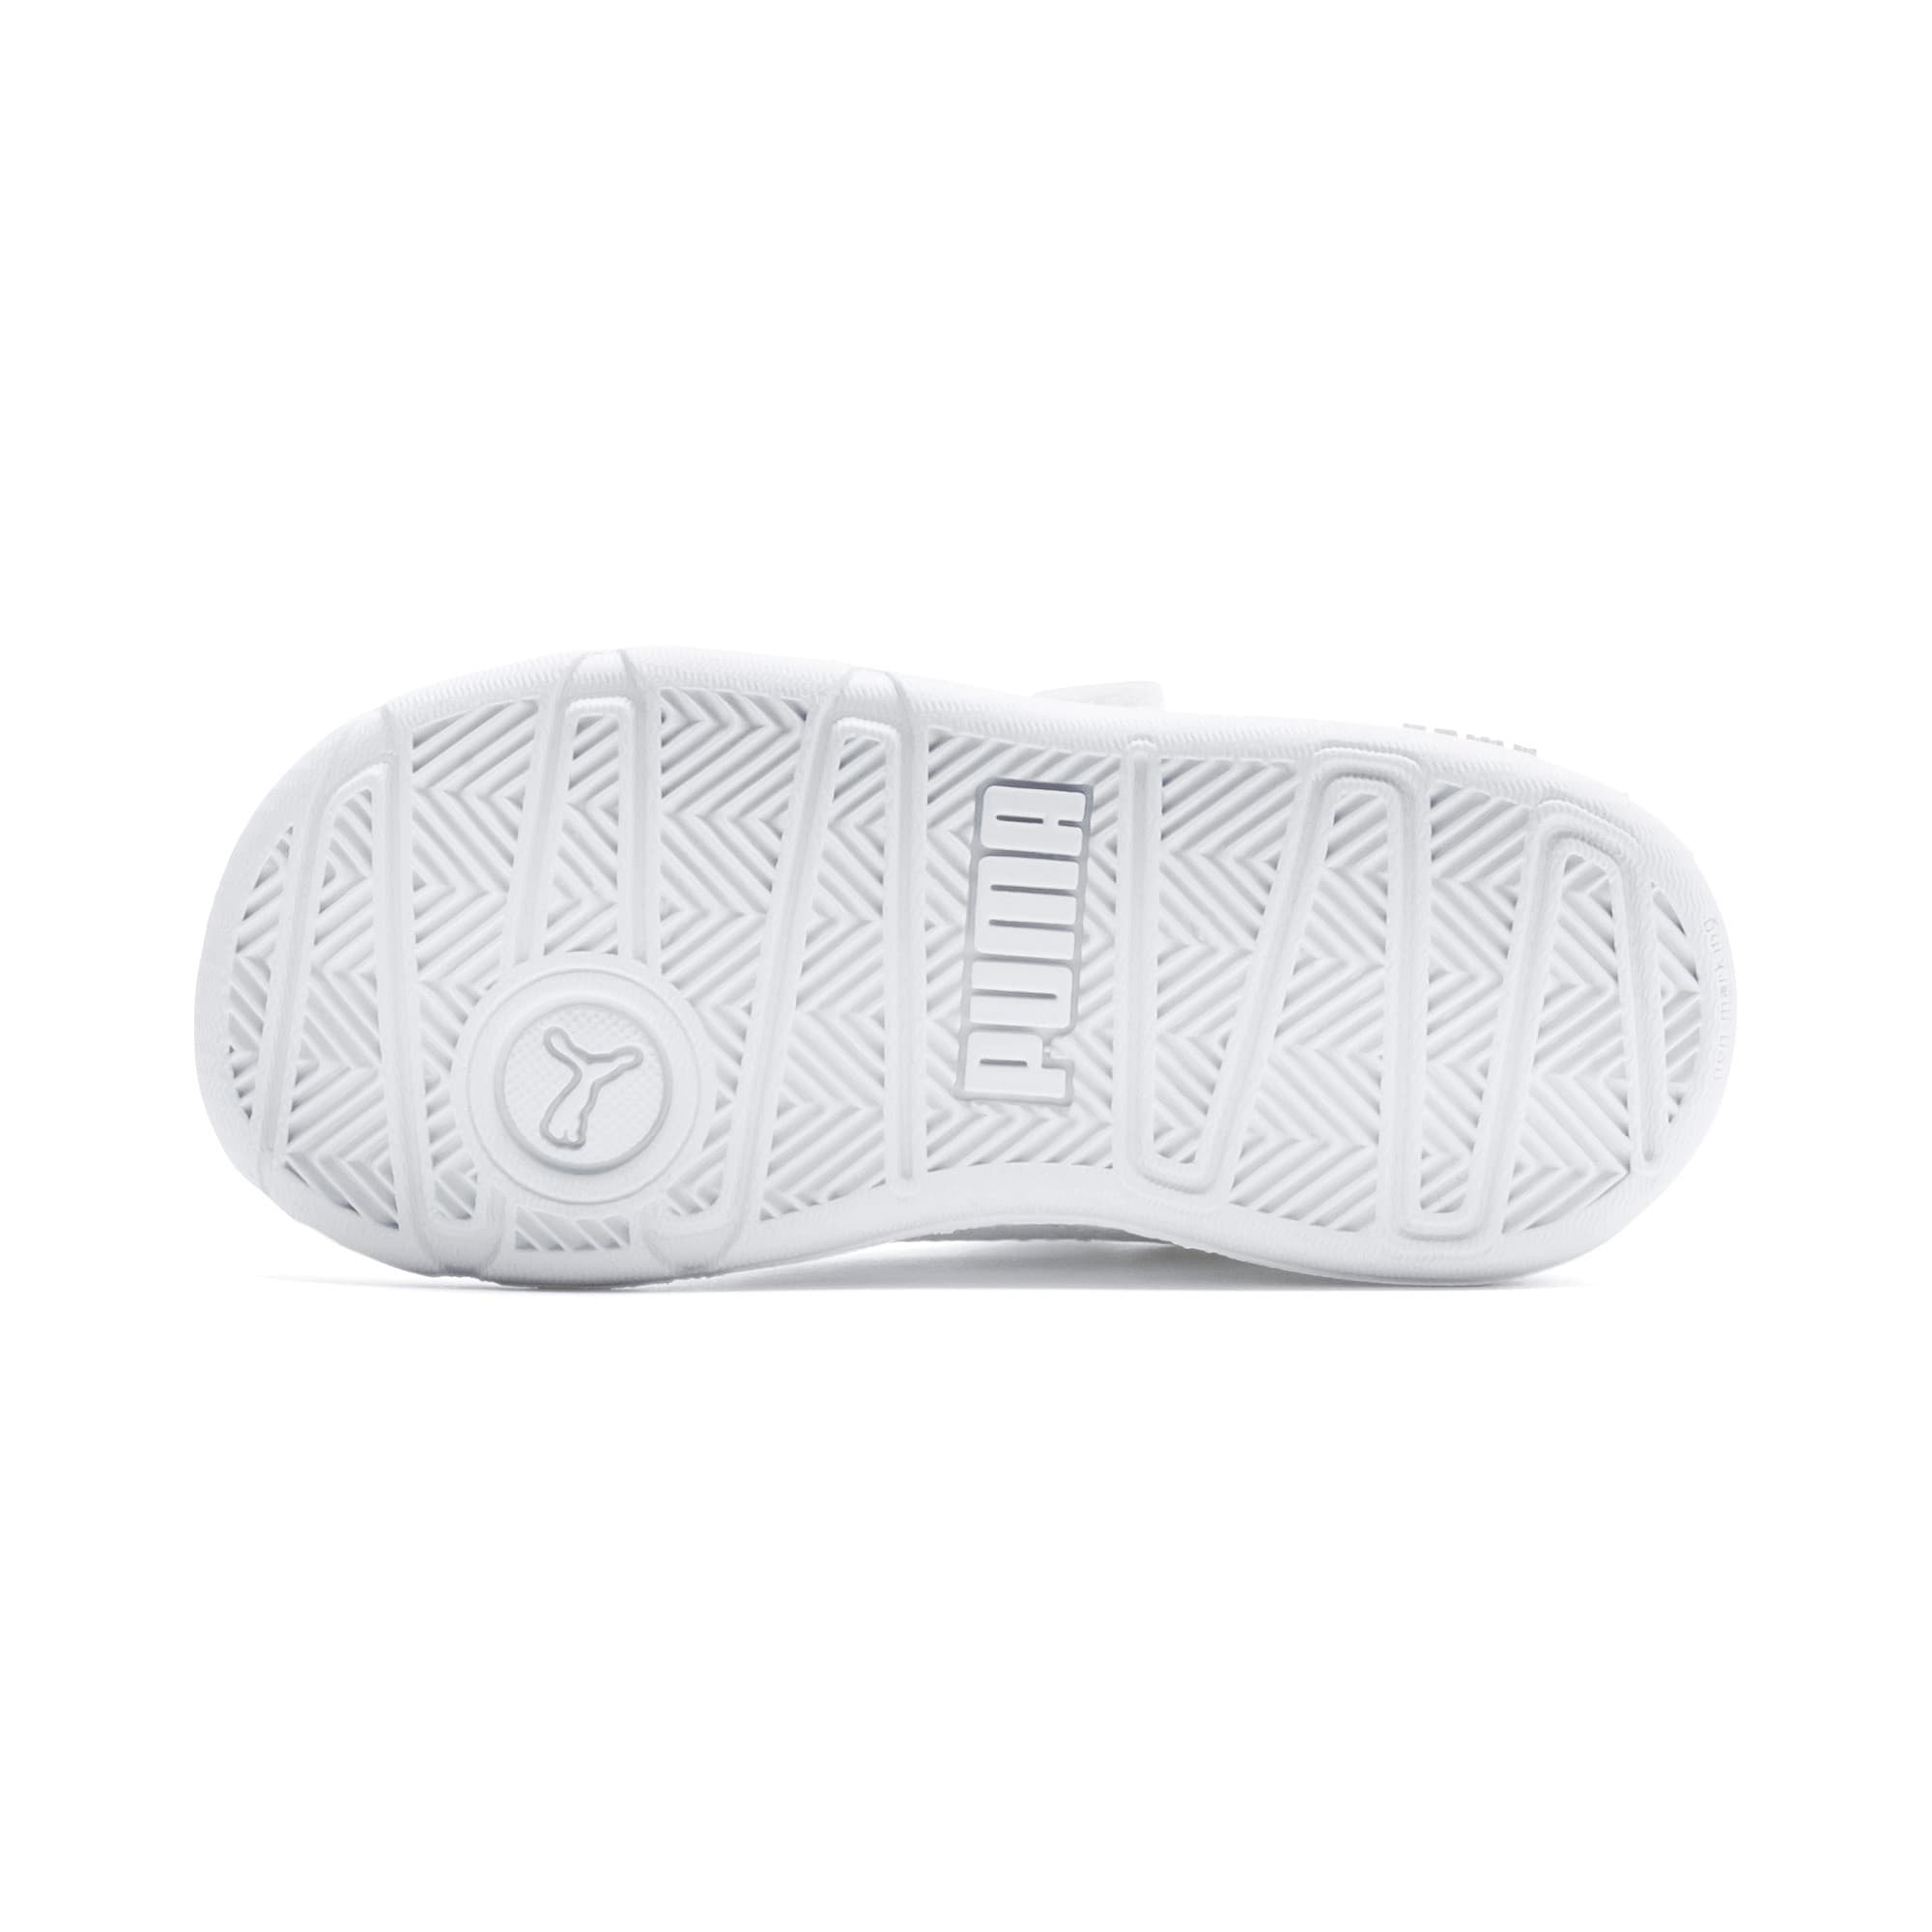 Thumbnail 4 of Stepfleex 2 SL VE V Babies Sneaker, Puma White-Puma White, medium